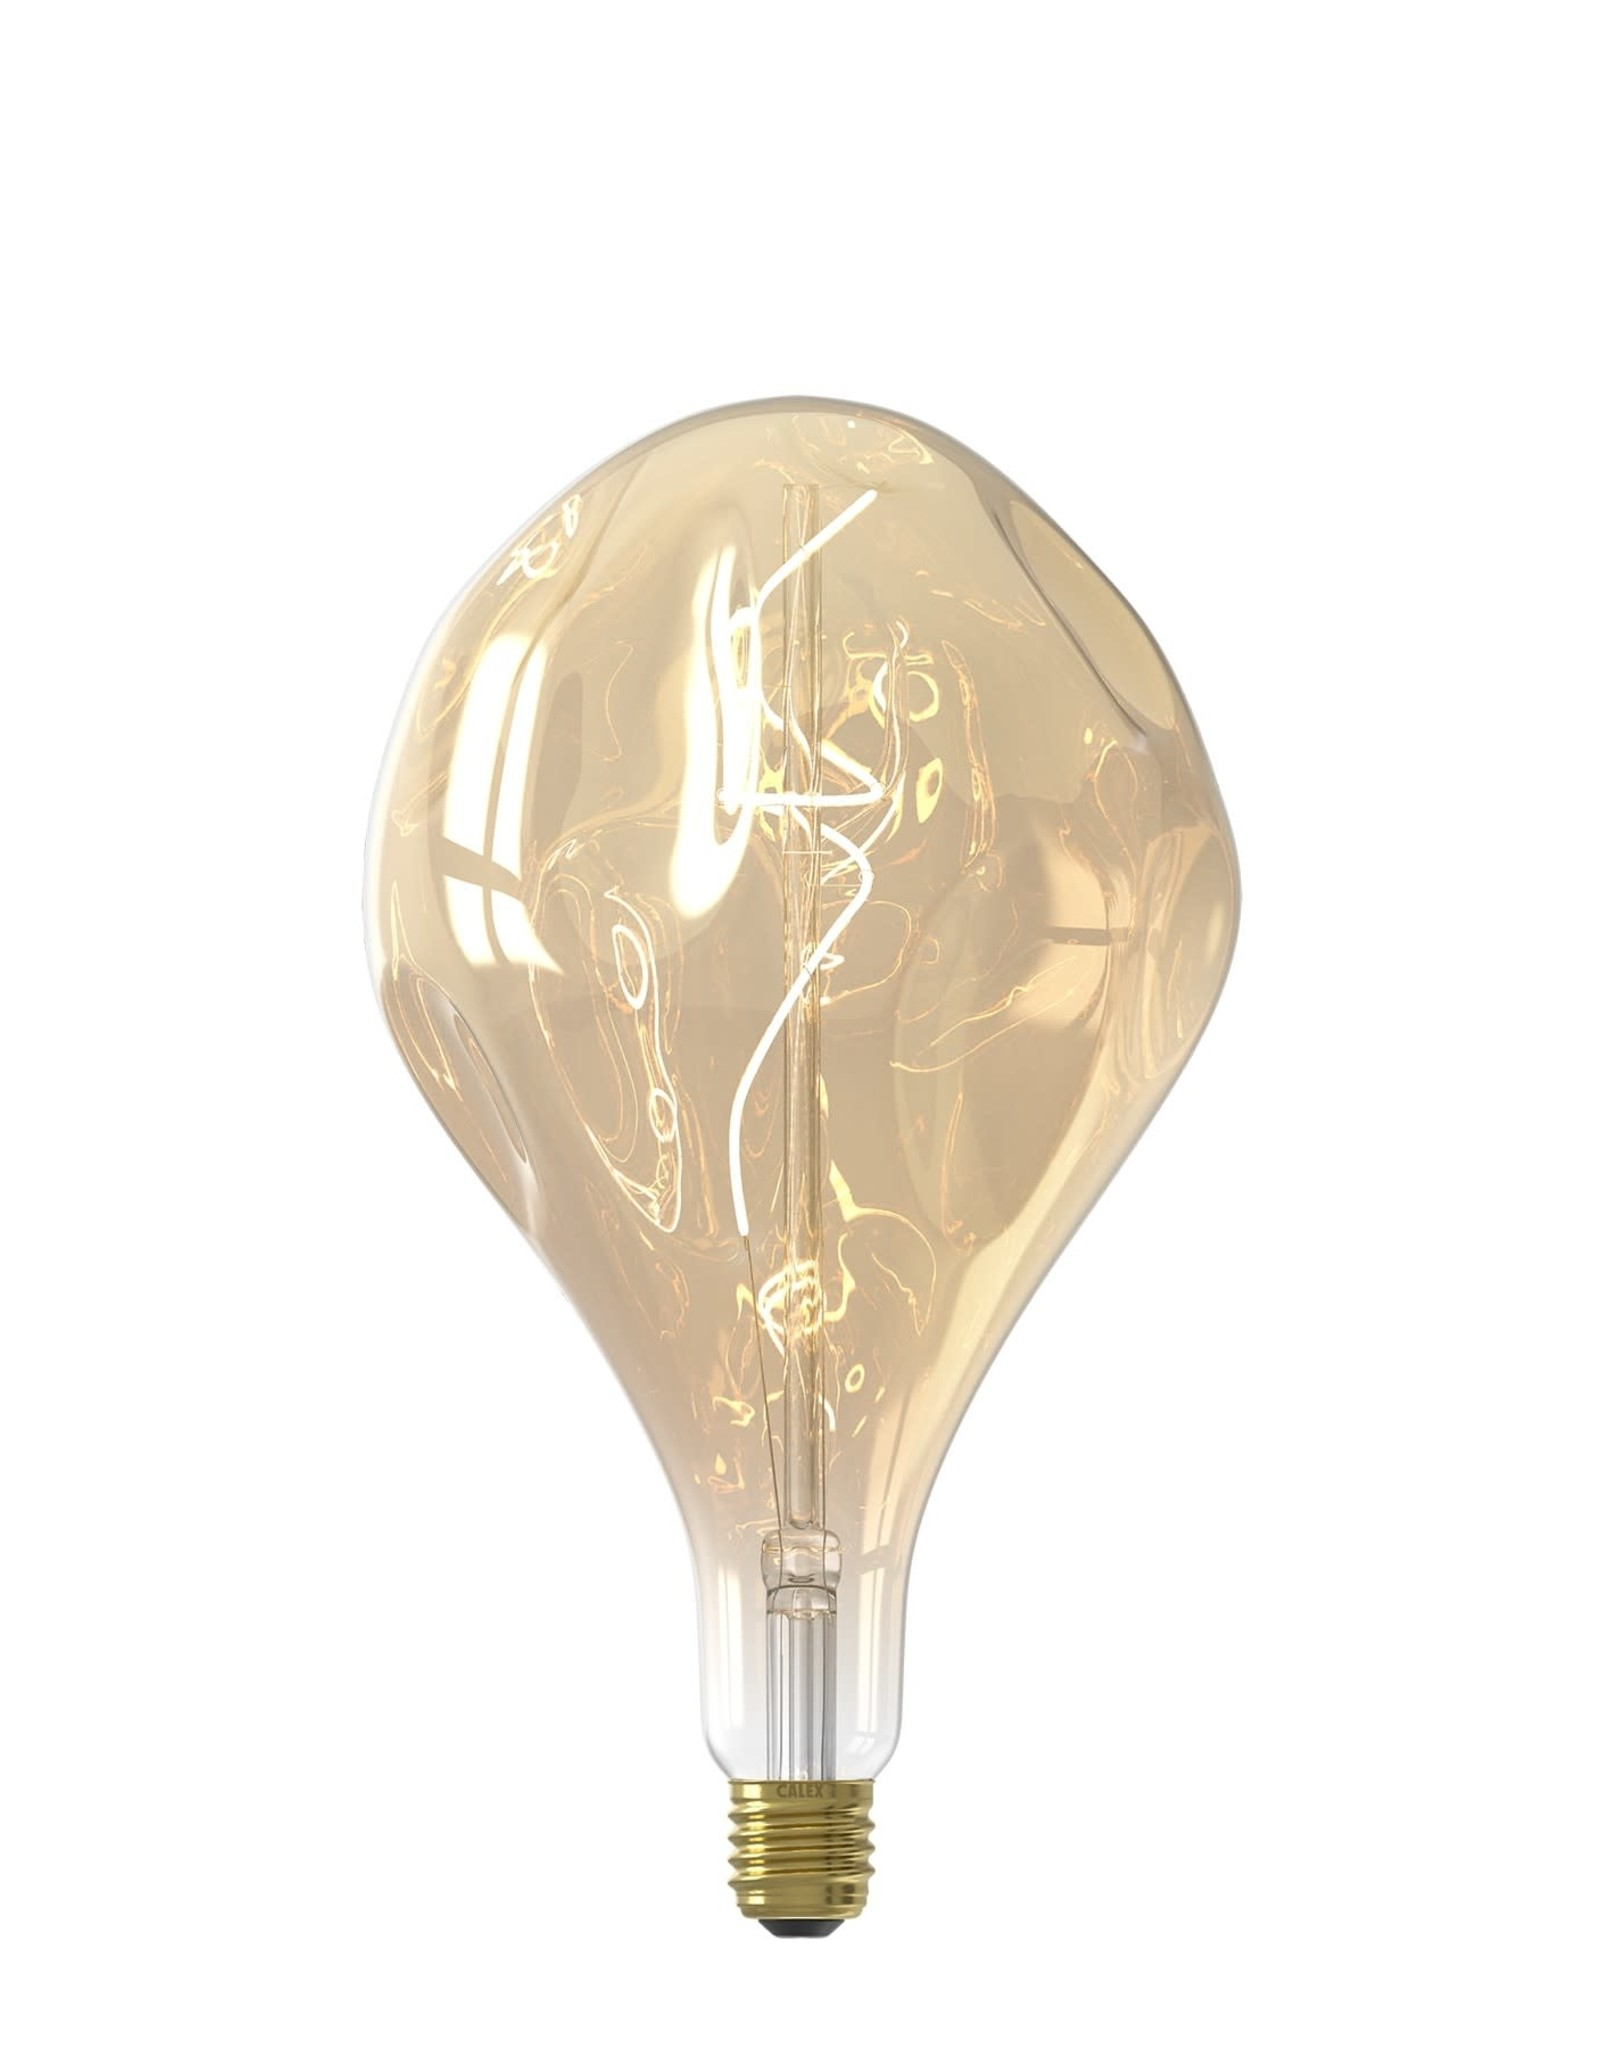 Calex XXL Organic EVO LED Lamp 240V 6W 340lm E27 PS165, Gold 2100K dimmable, energy label A